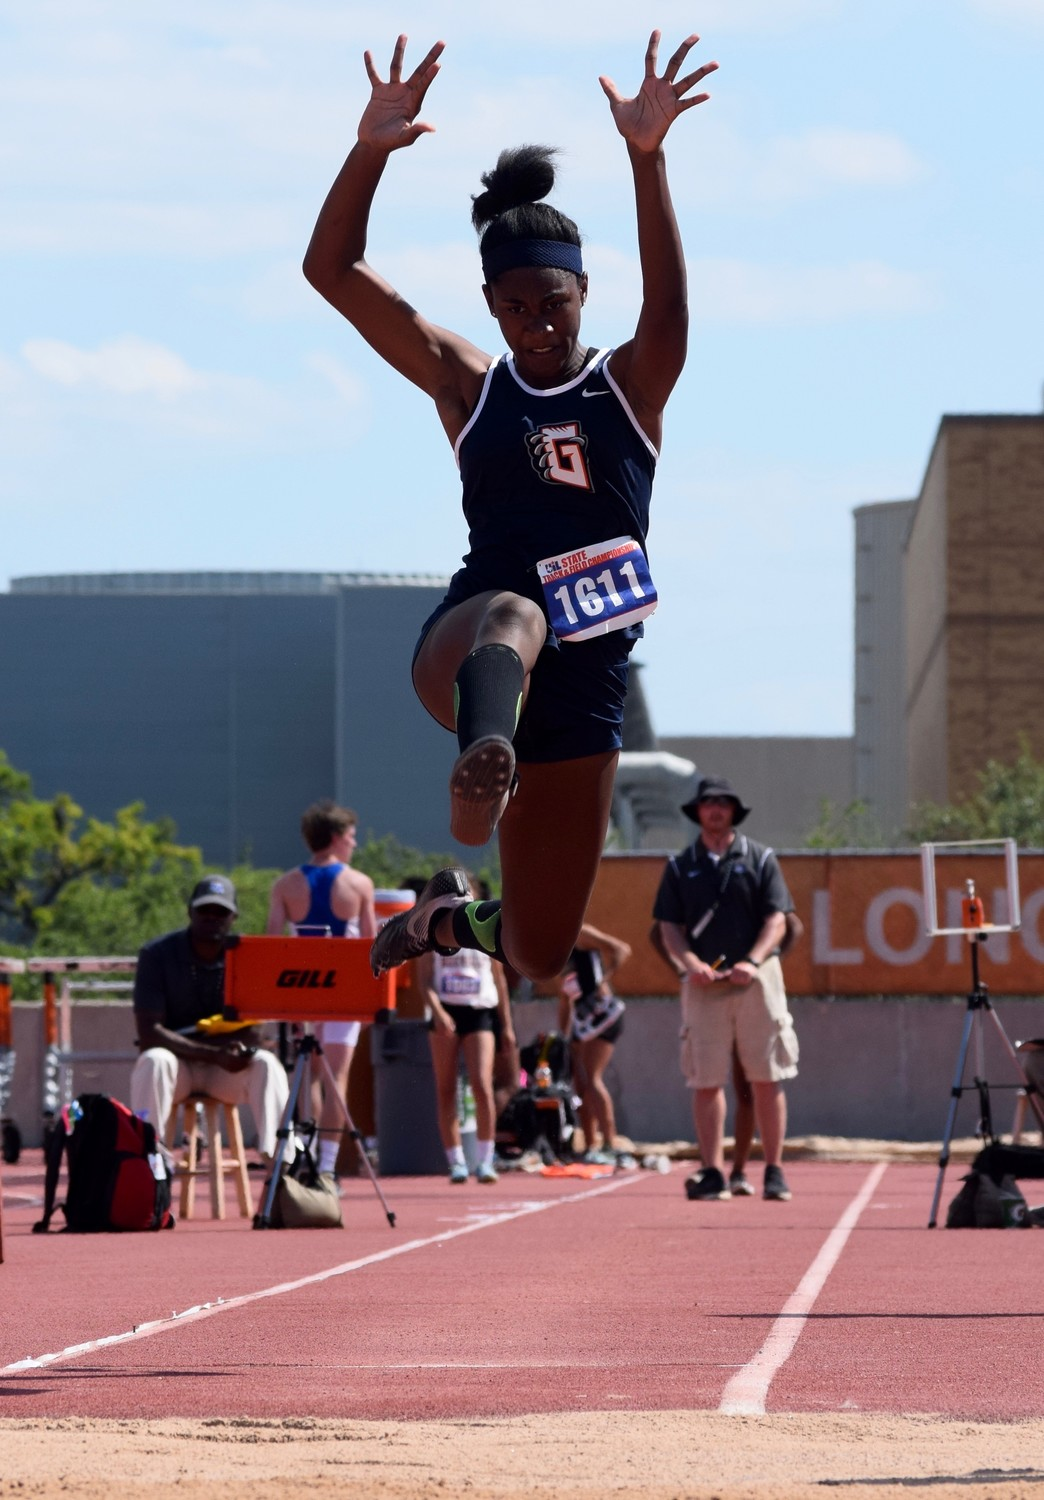 Glenn sophomore Gaby Thomas won two medals at the State Track & Field meet, finishing second in the triple jump and long jump. She finished ninth in the 100-meter dash.